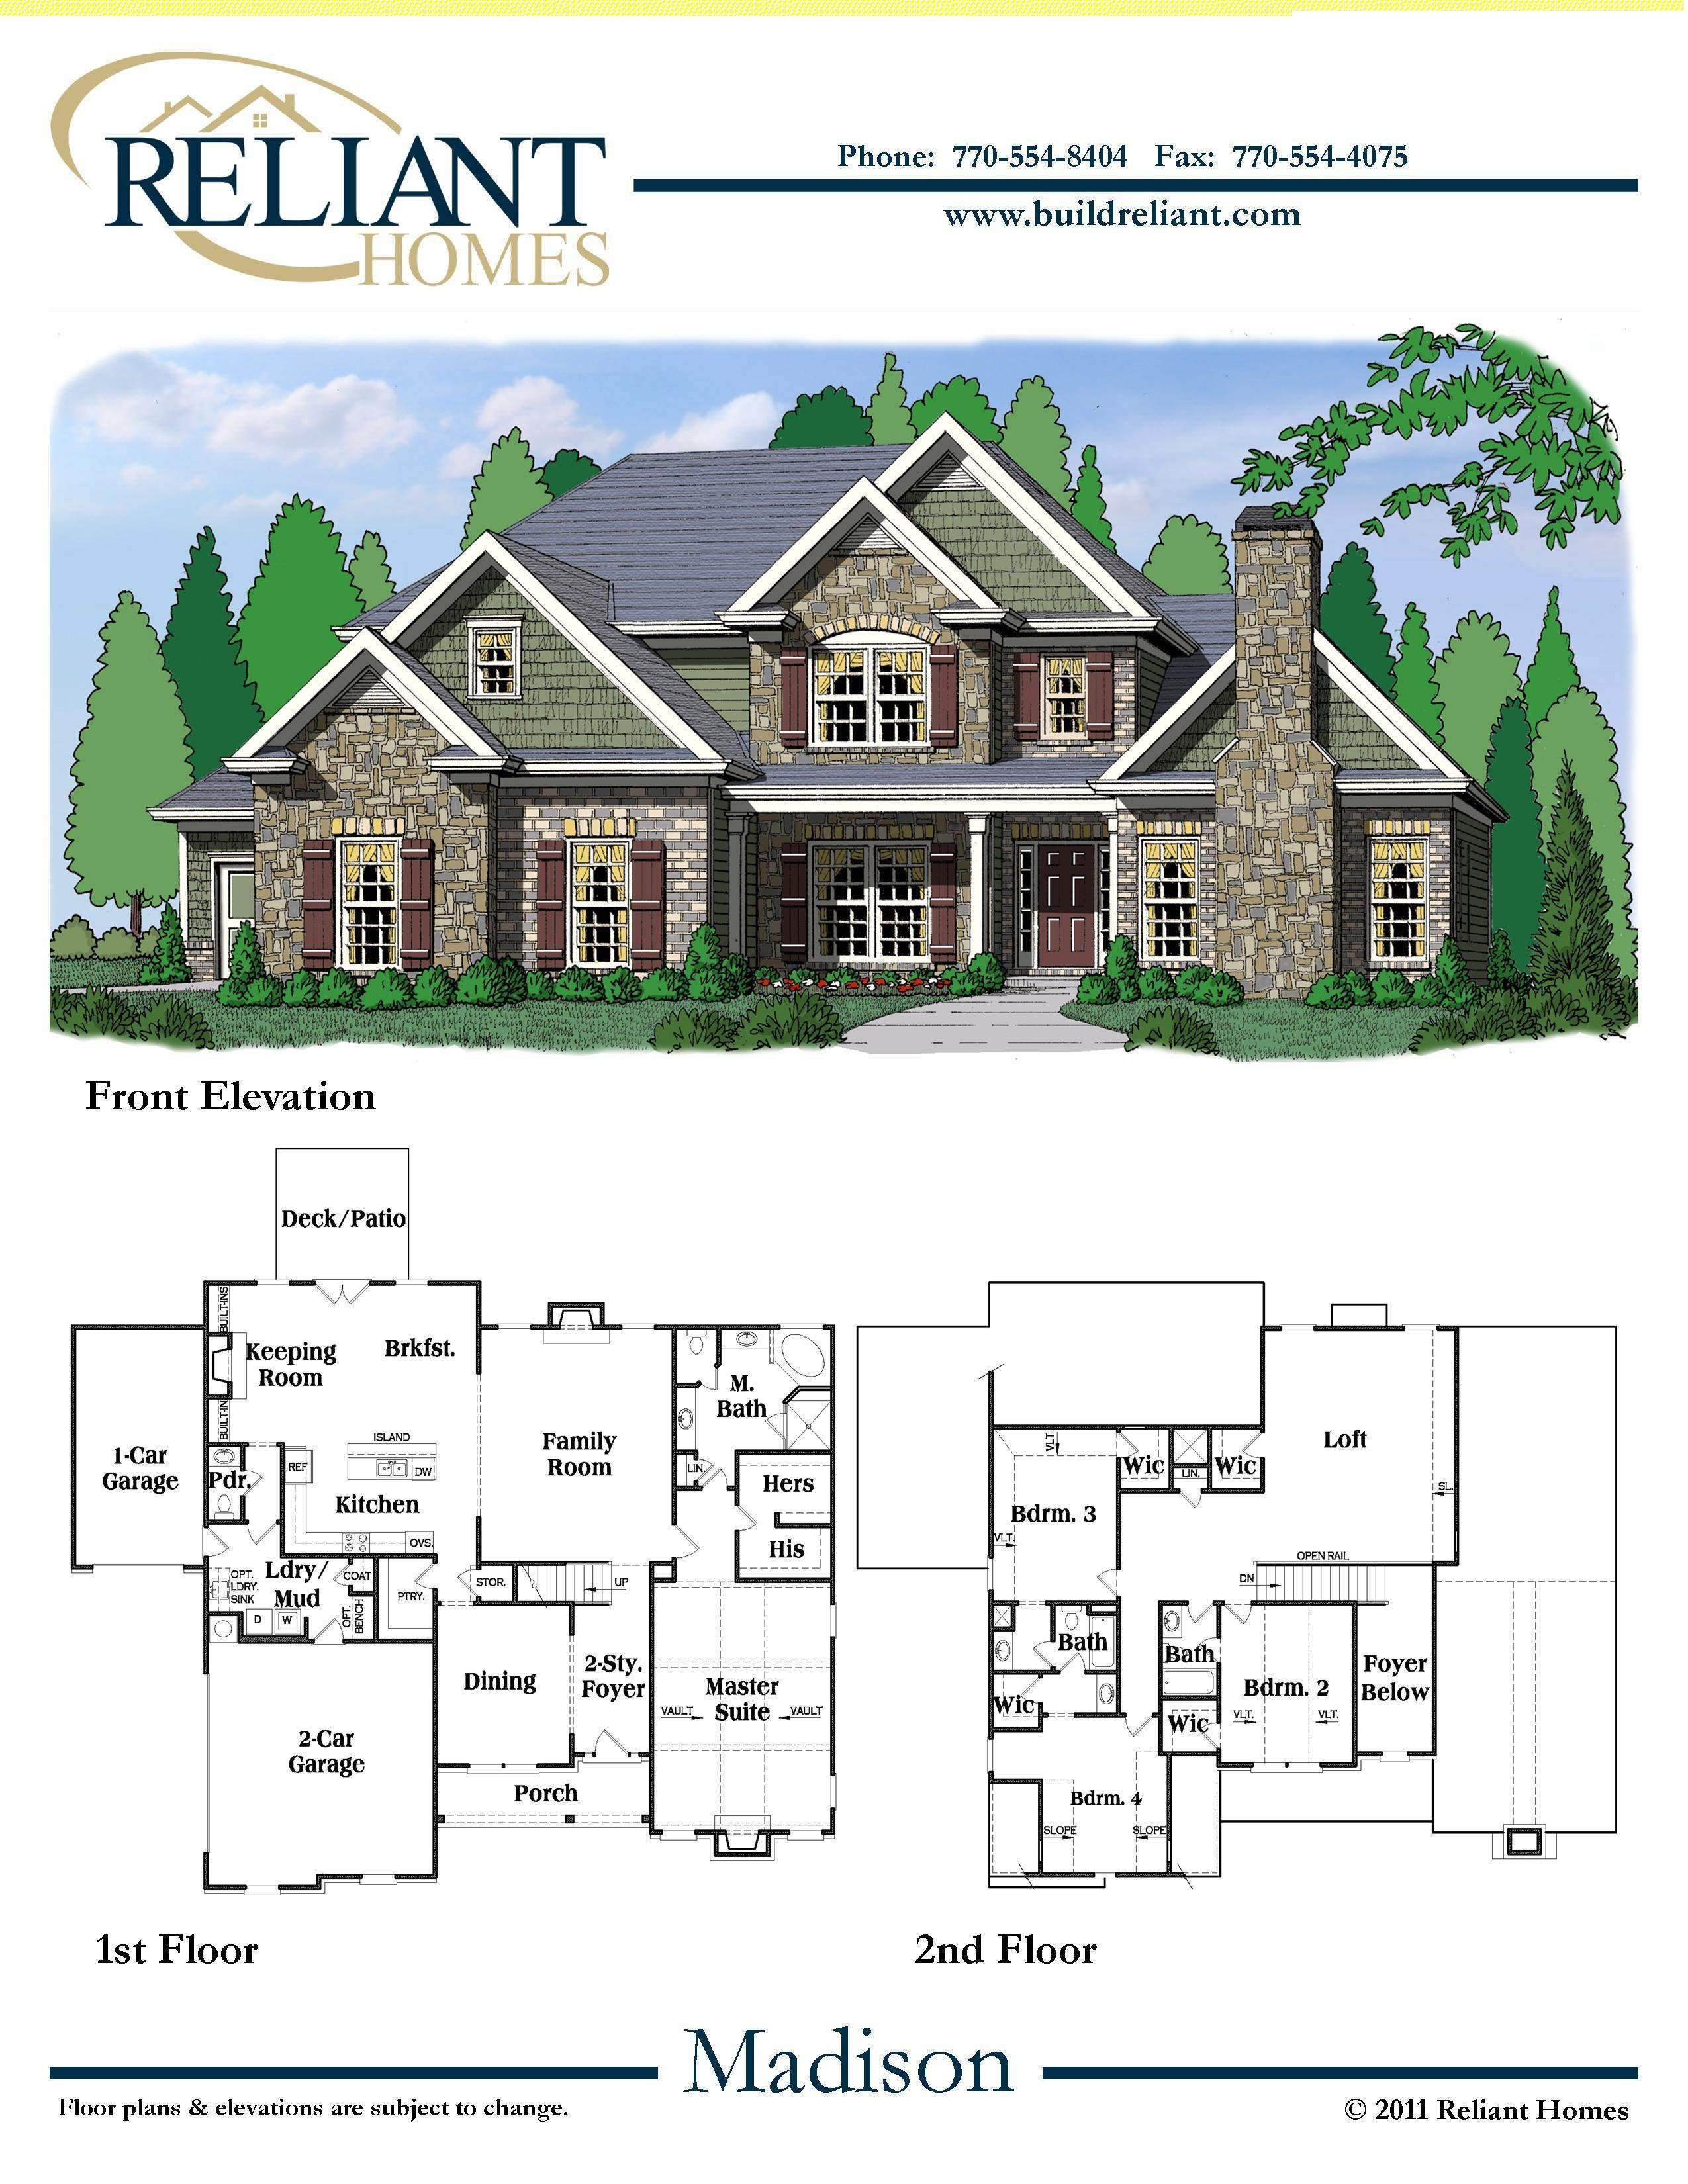 reliant homes the madison plan floor plans homes homes for reliant homes the madison plan floor plans homes homes for sale